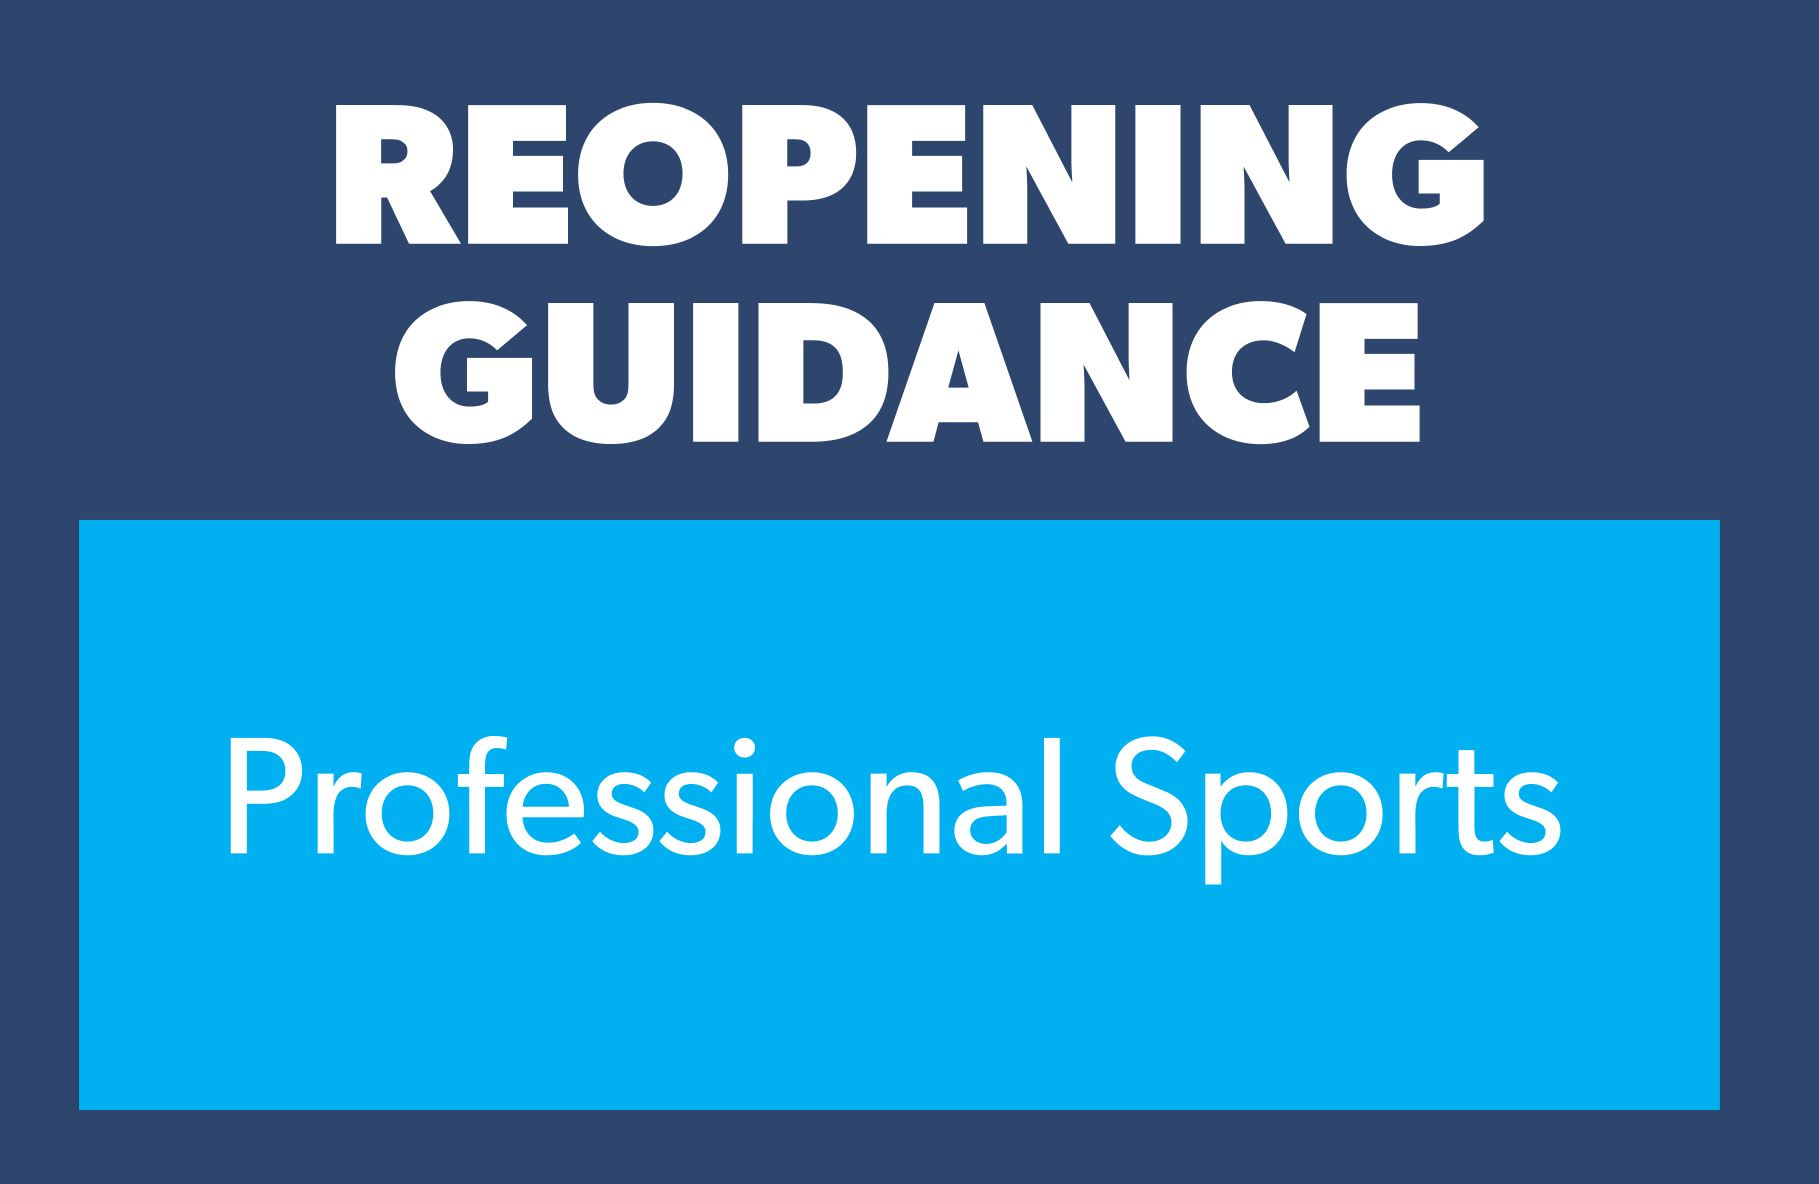 guidance professional sports